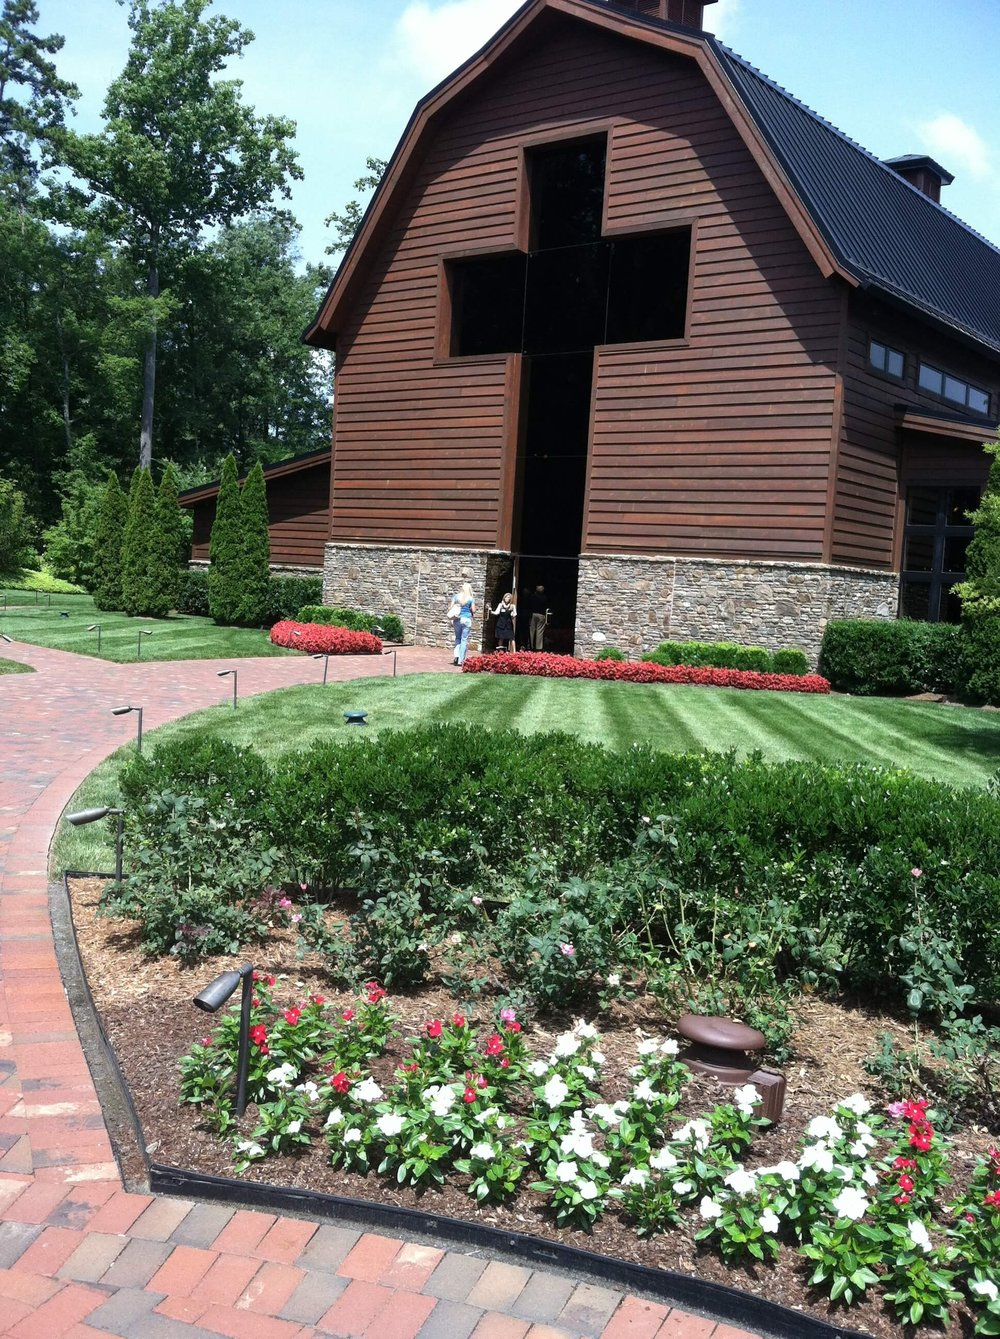 Here is the entrance to the Billy Graham library. You notice that you enter by the way of the cross. The building is built in the shape of a dairy barn to remember that Billy was a simple country boy who grew up on a dairy farm. At his home, Billy's father and several other men prayed that a great preacher of the Gospel would come from their town. Little did they know that 15 year old Billy, milking the cows in the barn, would be the answer to their prayers.